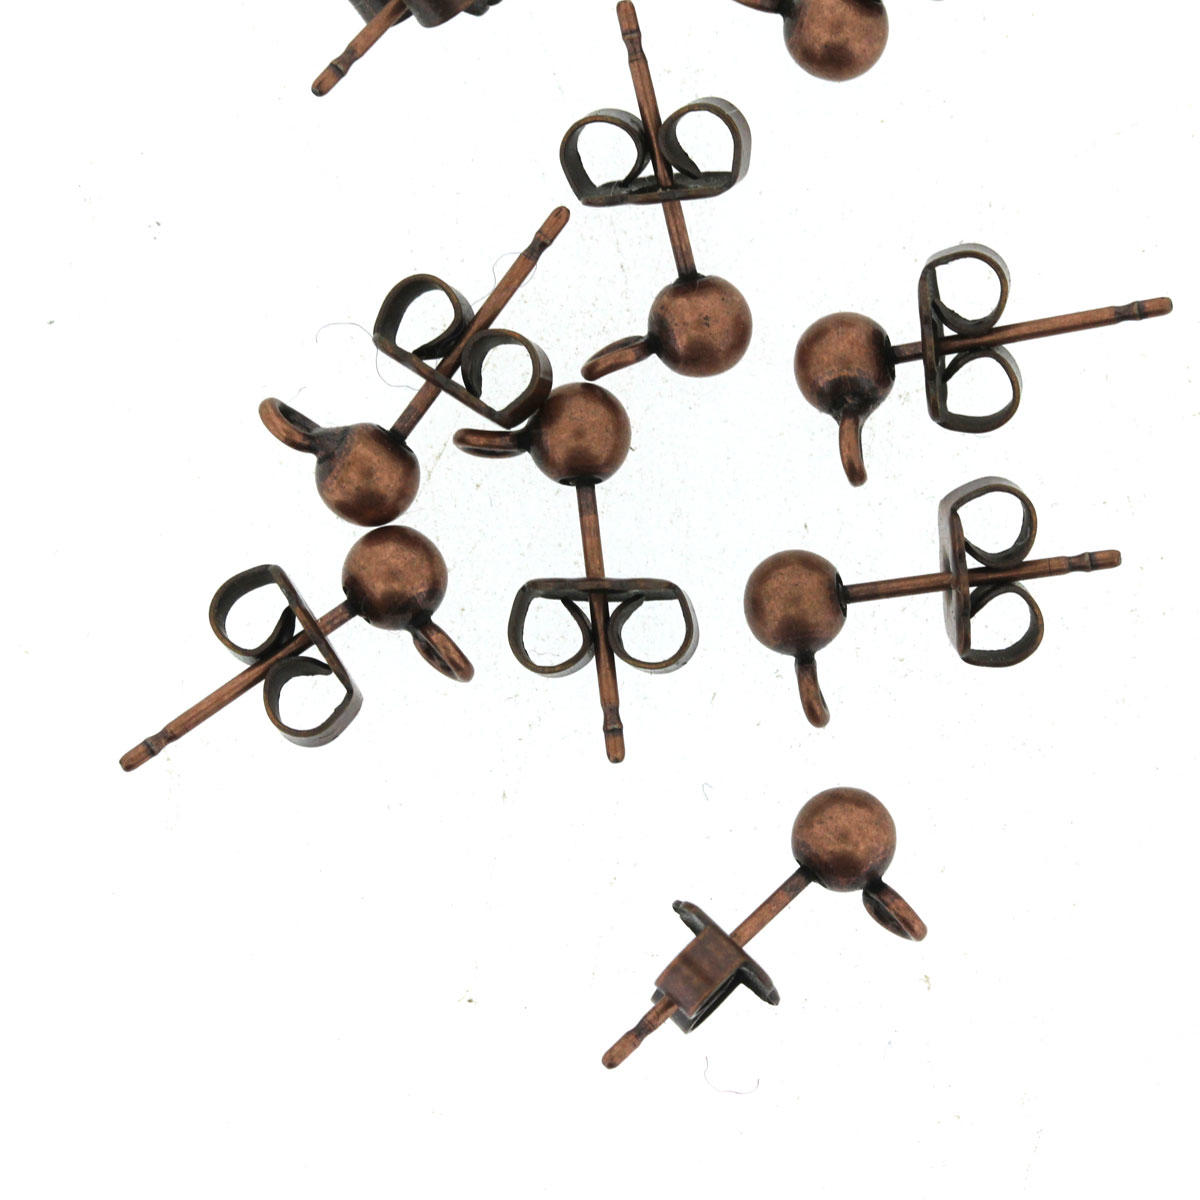 Antique Copper Earring Fittings